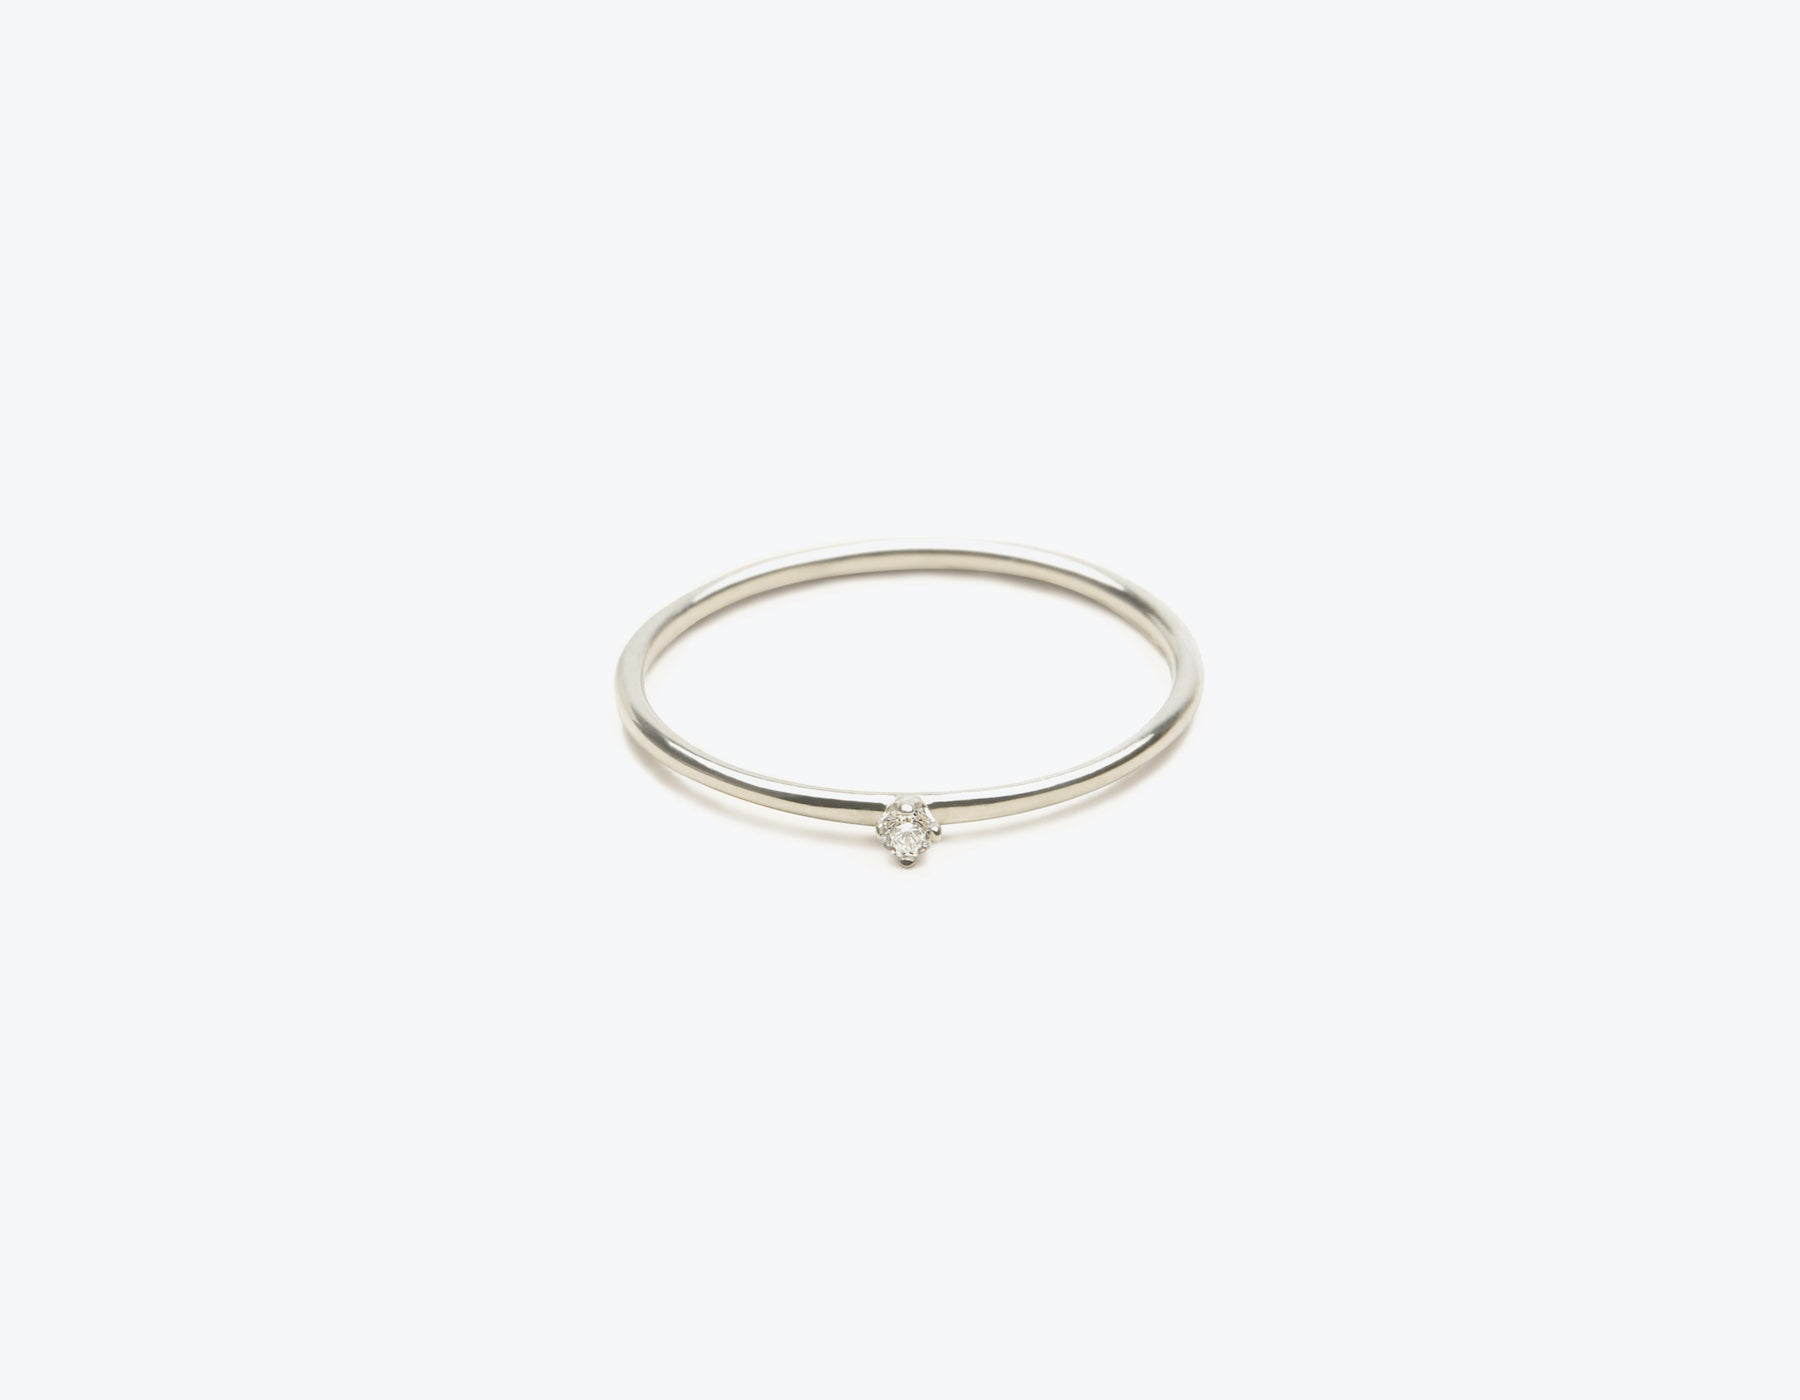 Classic minimalist 14k solid gold small Round Diamond Stacker ring by Vrai and Oro, 14K White Gold